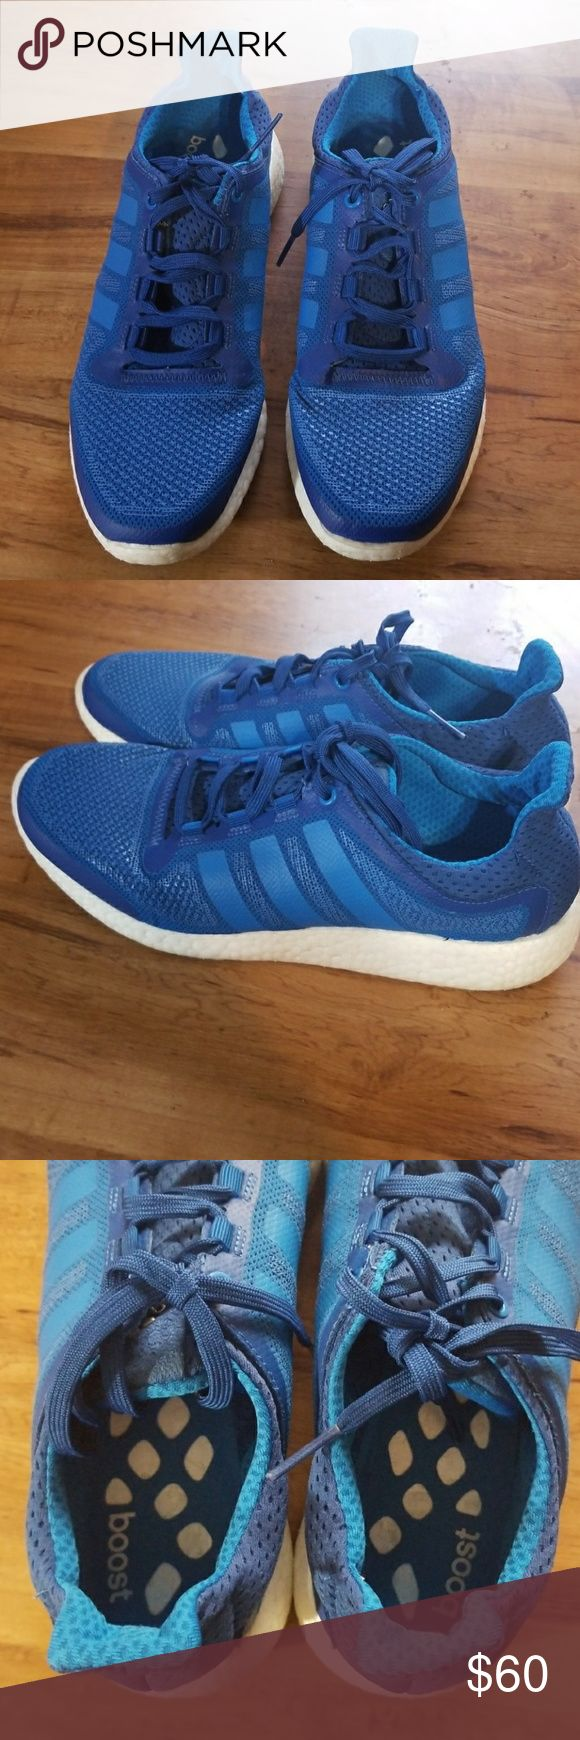 Adidas Pure Boost Very gently worn Adidas Pure Boost size 10 adidas Shoes Sneakers